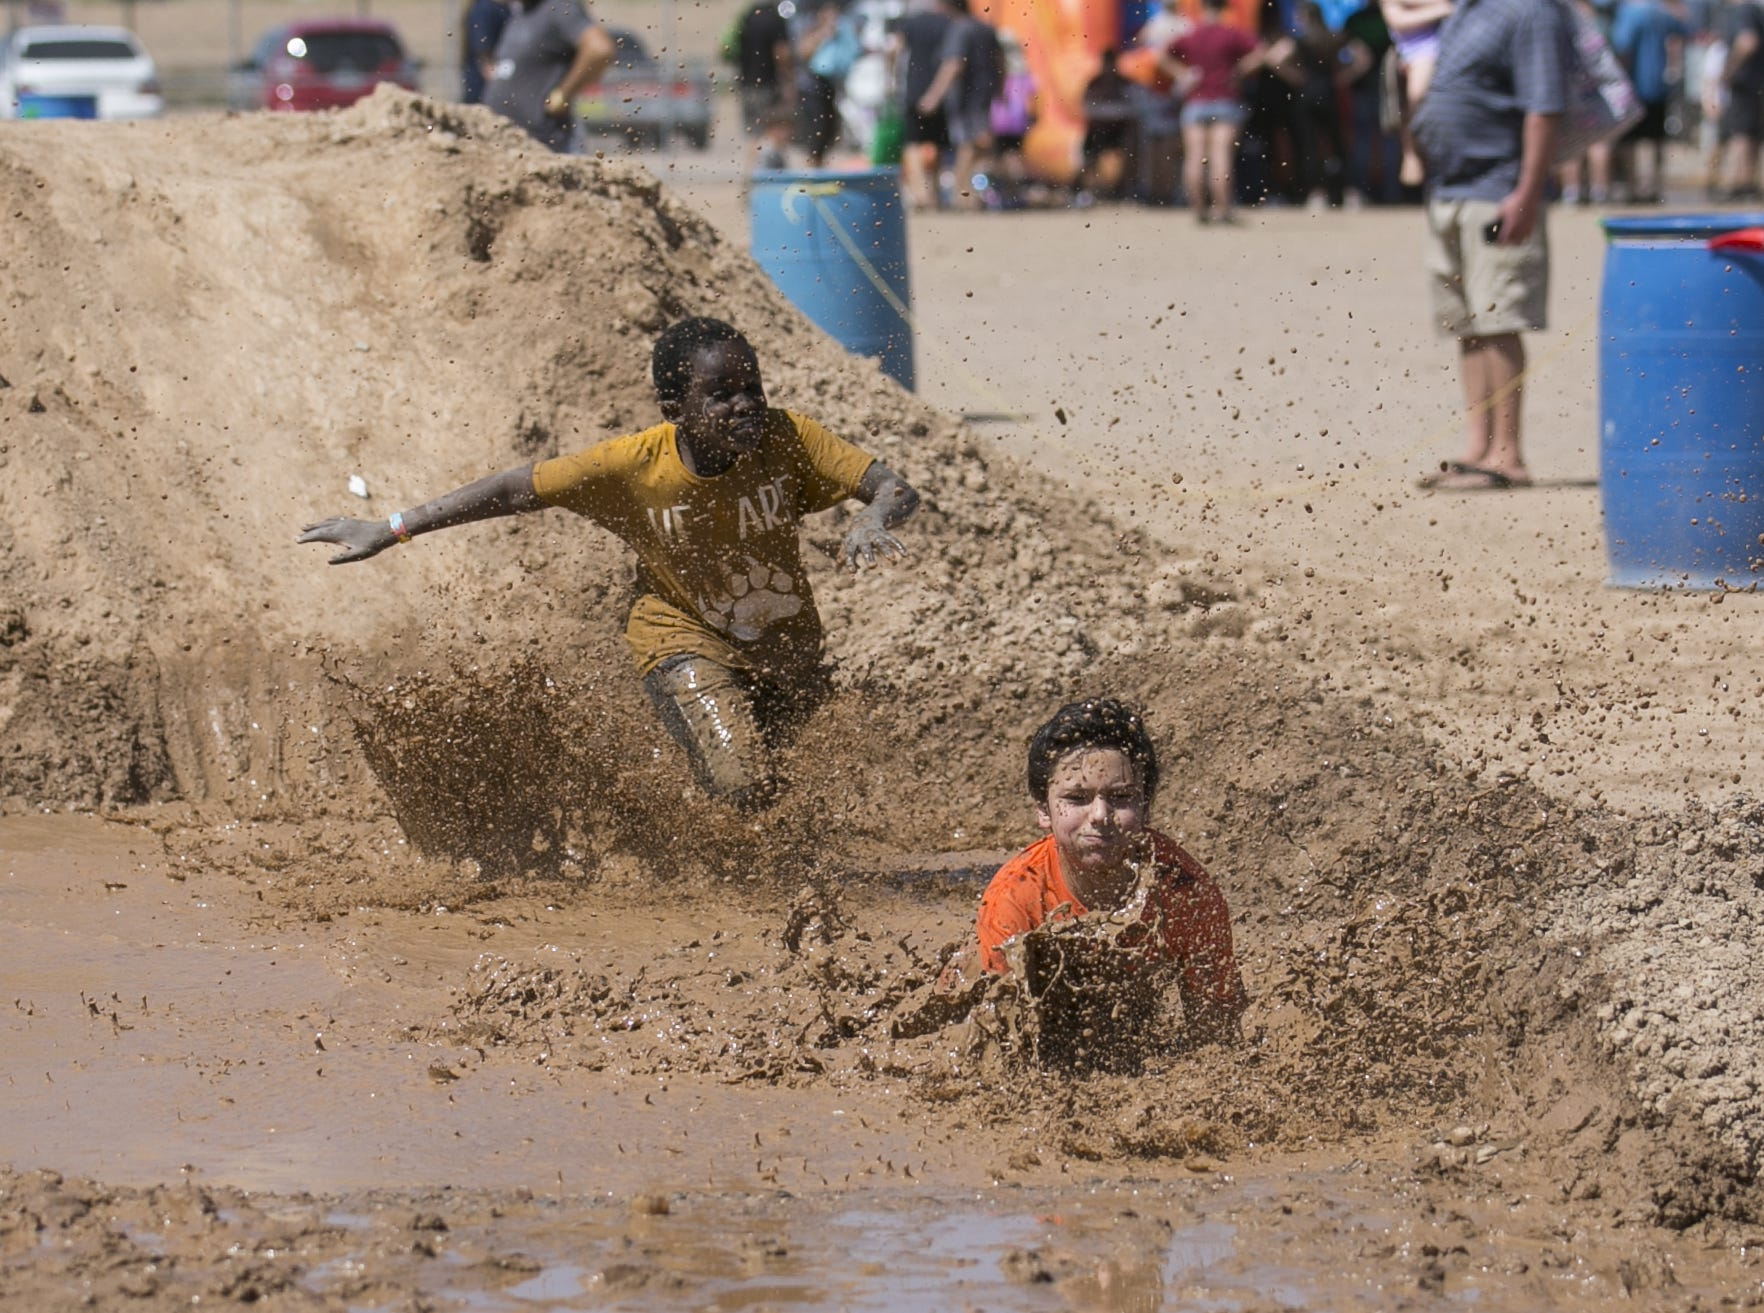 10-year-old Joshua Mwika (left) races 10-year-old Luke Geoles Hensey (right) at the third annual Messy Fest in Queen Creek on Saturday, Sept. 15, 2018.